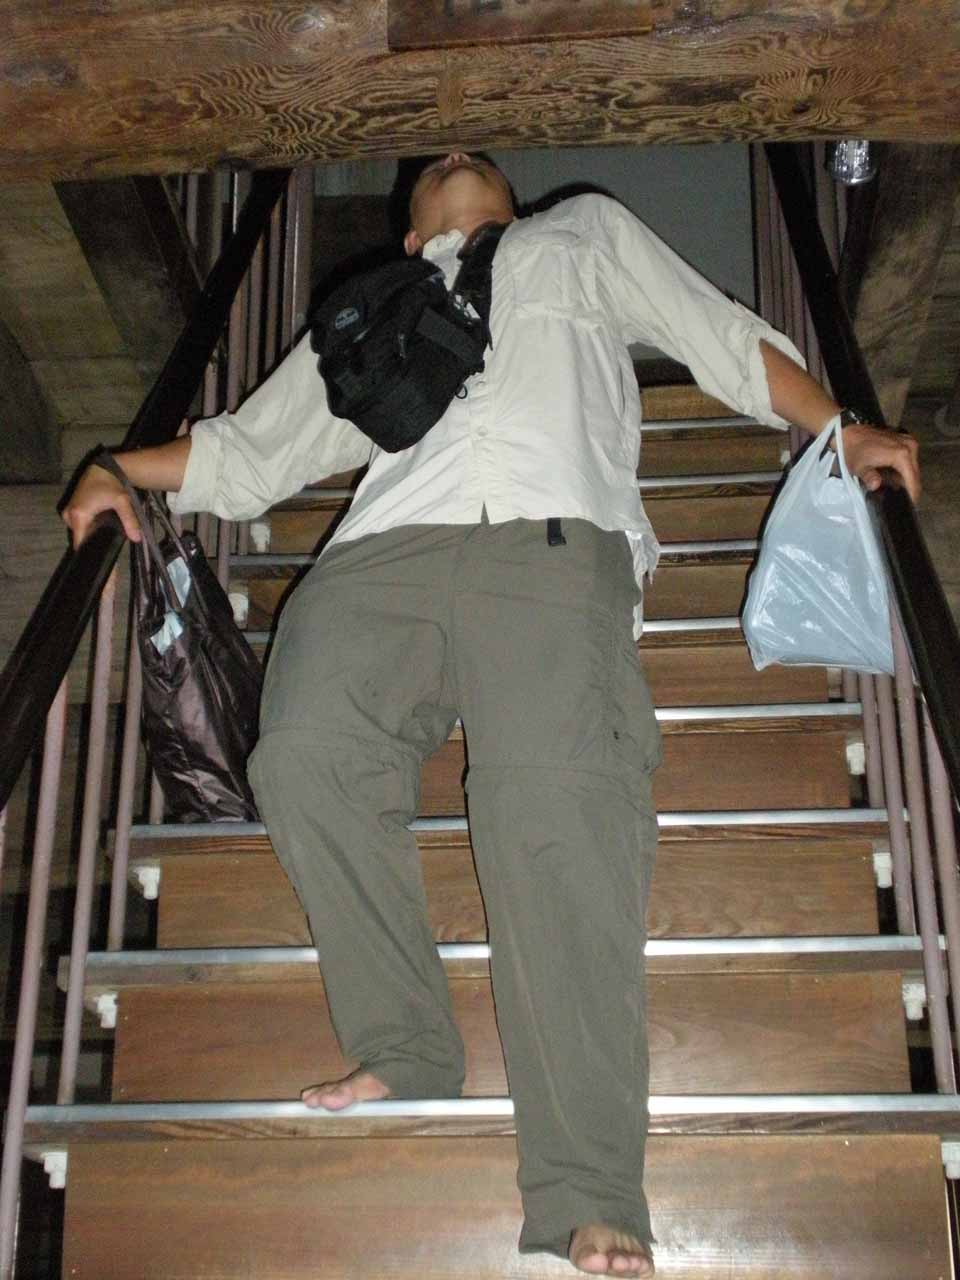 Me doing the limbo while descending some stairs in Himeiji-jo